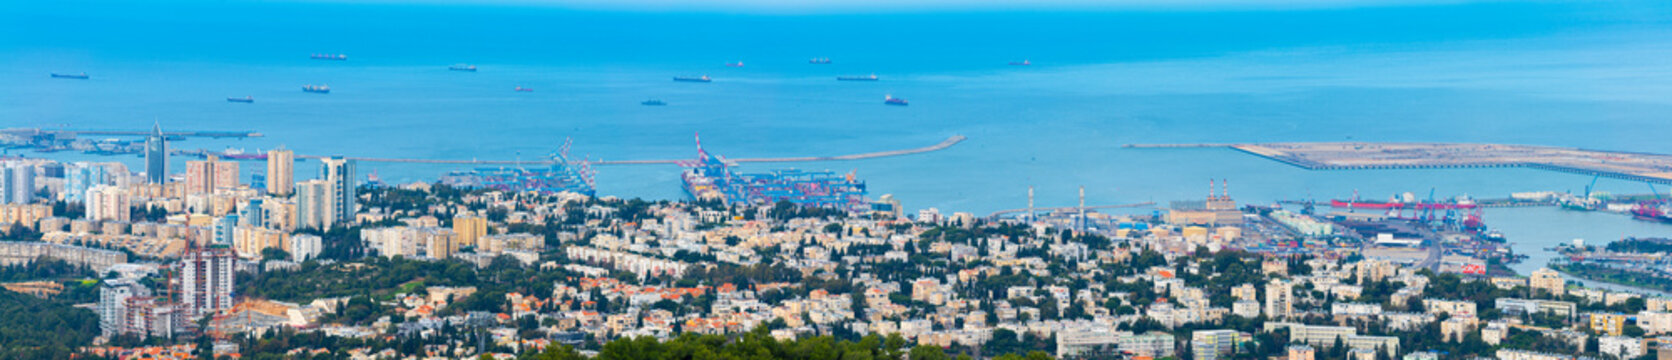 The Cityscape of Haifa At Day,  The Israel Cities, Aerial View, Israel